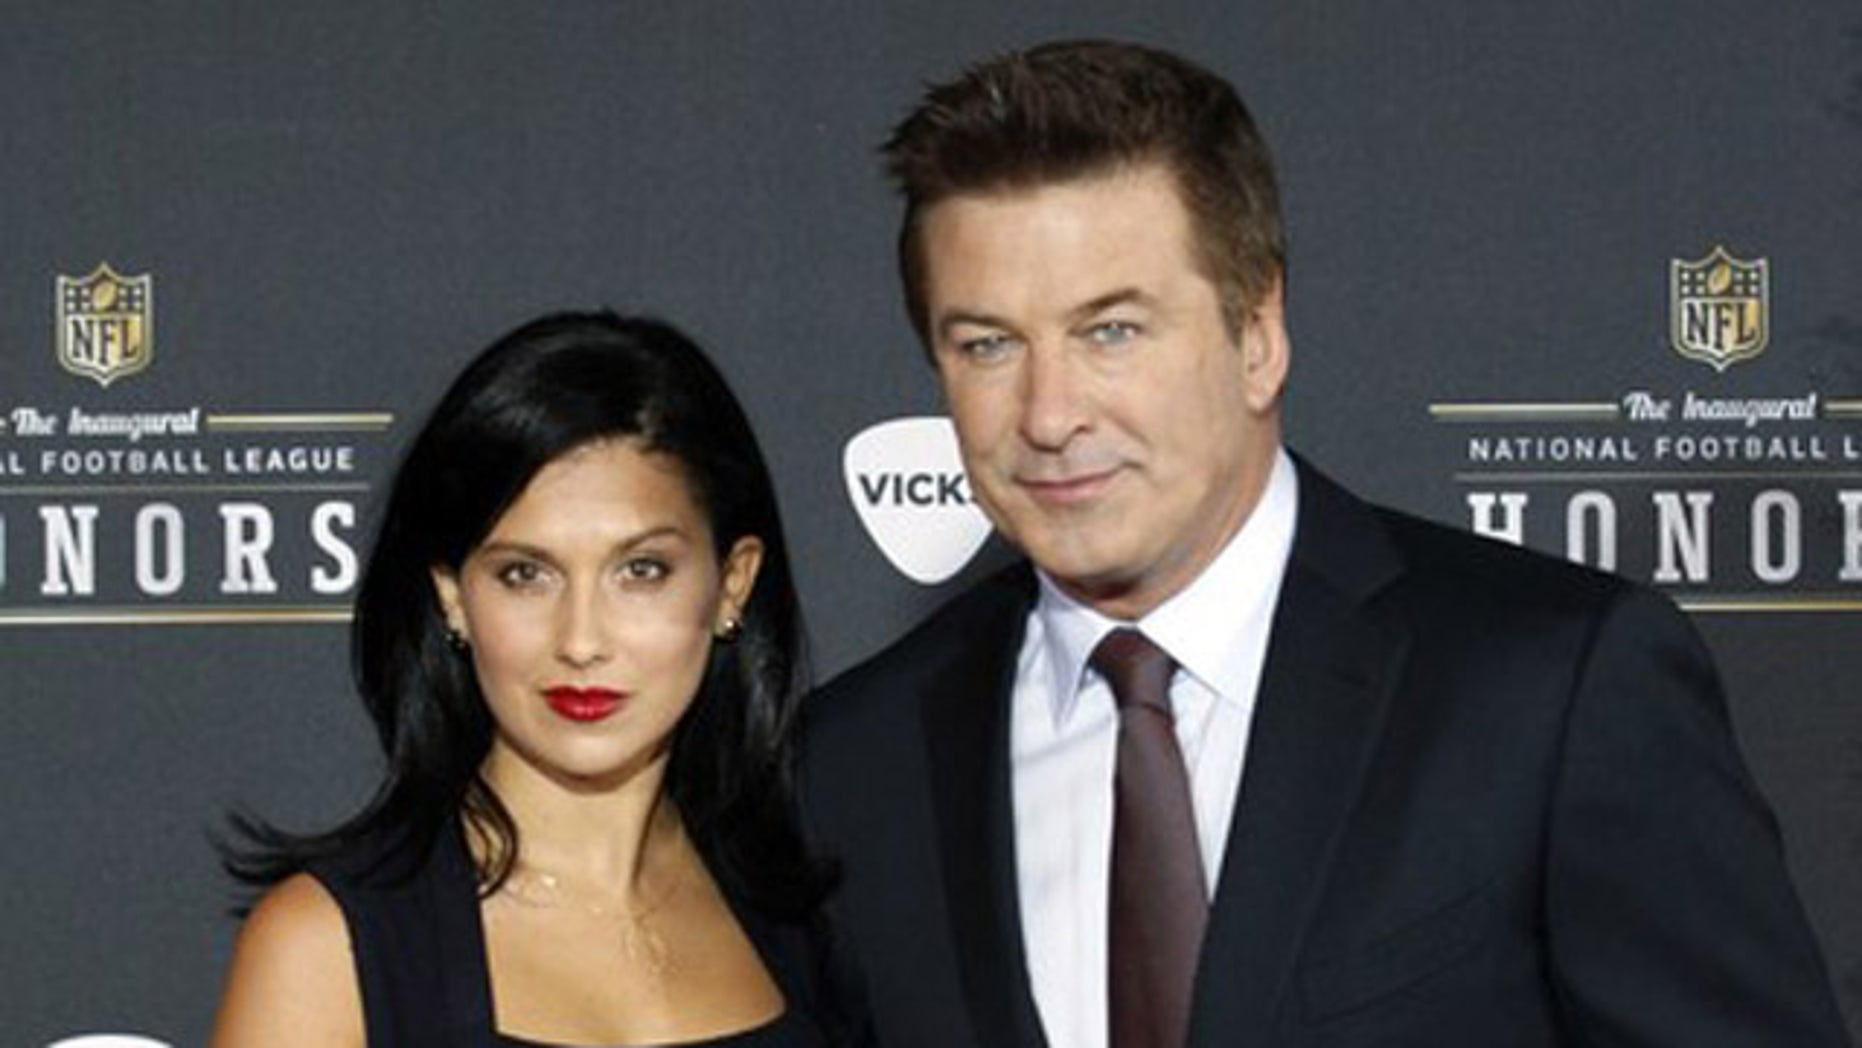 Feb. 4, 2012: Host Alec Baldwin and girlfriend Hilaria Thomas arrive for the Inaugural National Football League Honors at Super Bowl XLVI in Indianapolis, Indiana.